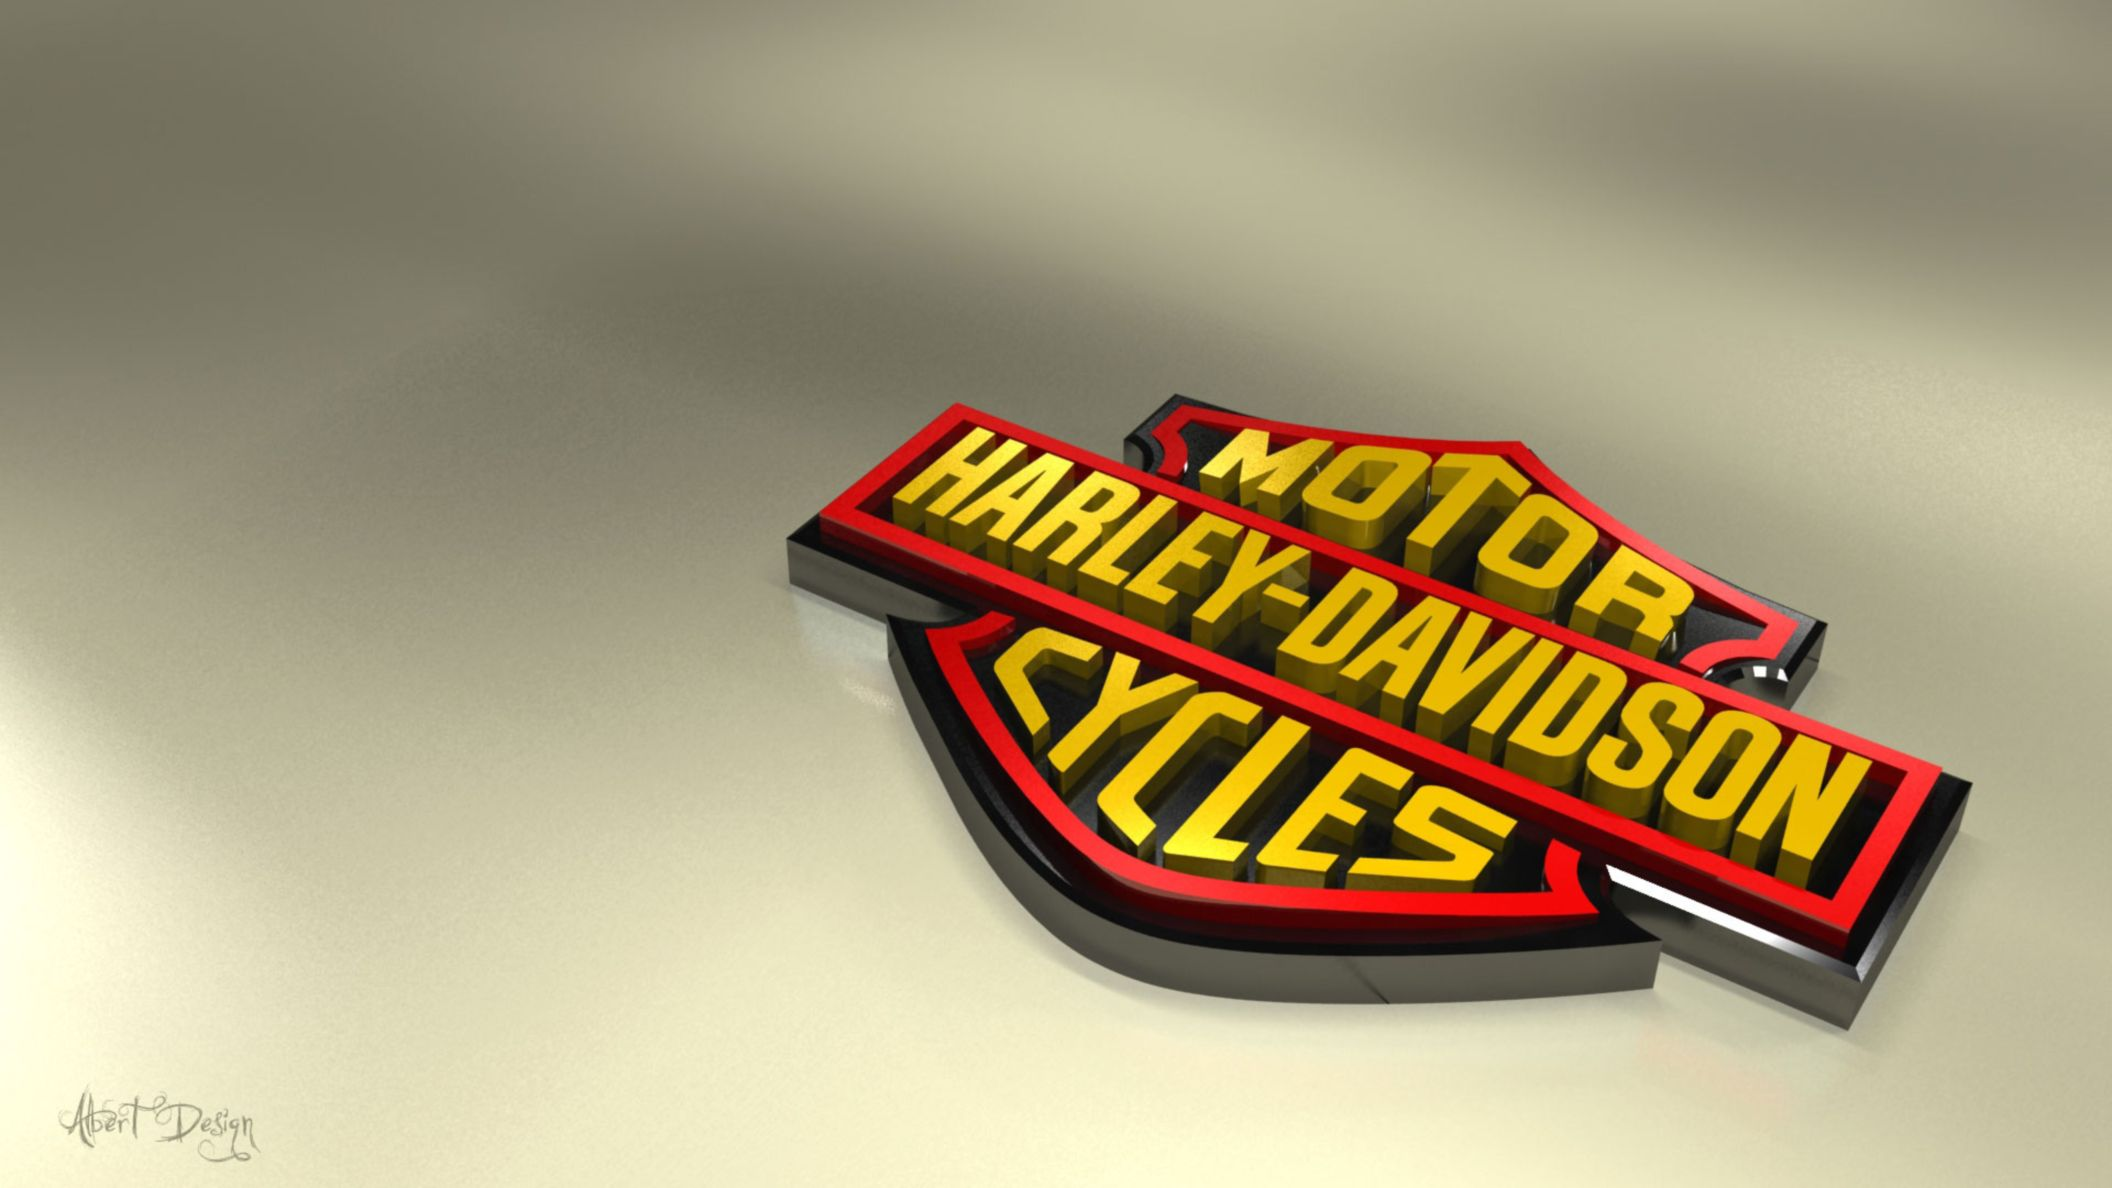 Download free HD Harley Logo Art Designs Wallpaper, image